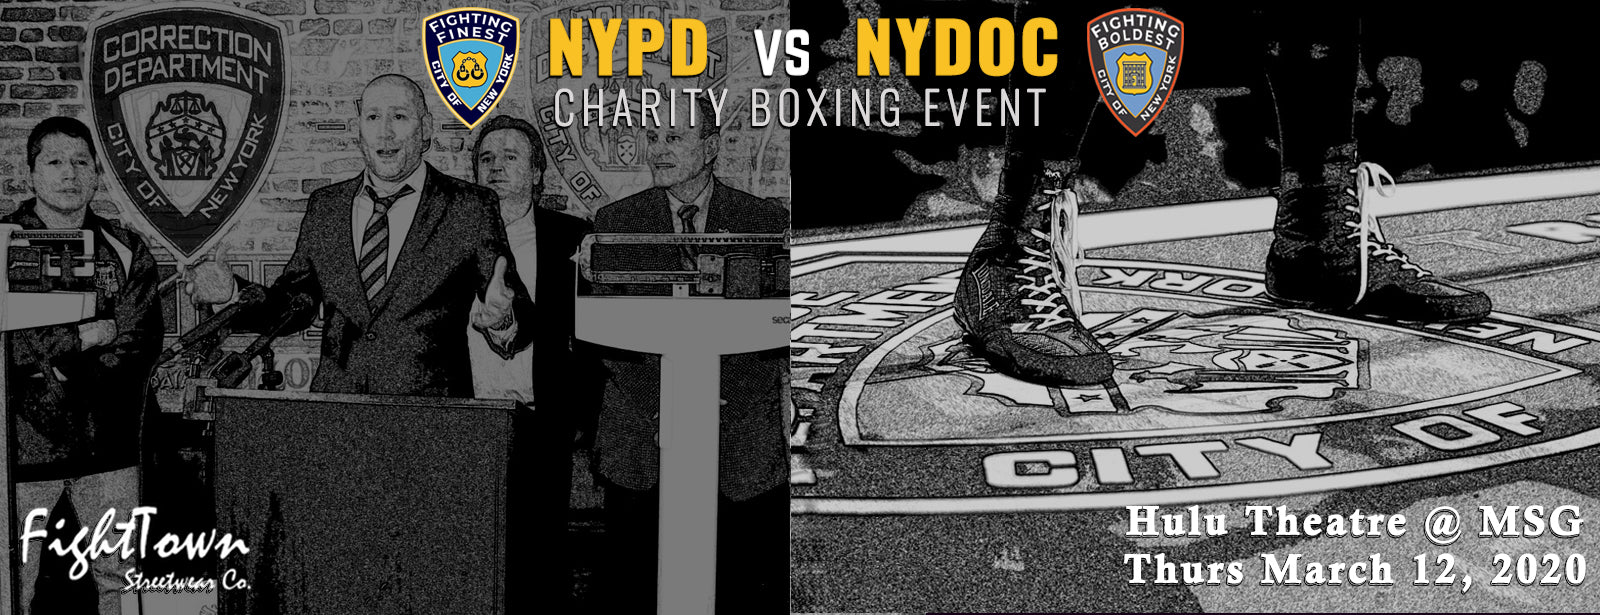 Official NYPD vs NYDOC Charity Event Apparel